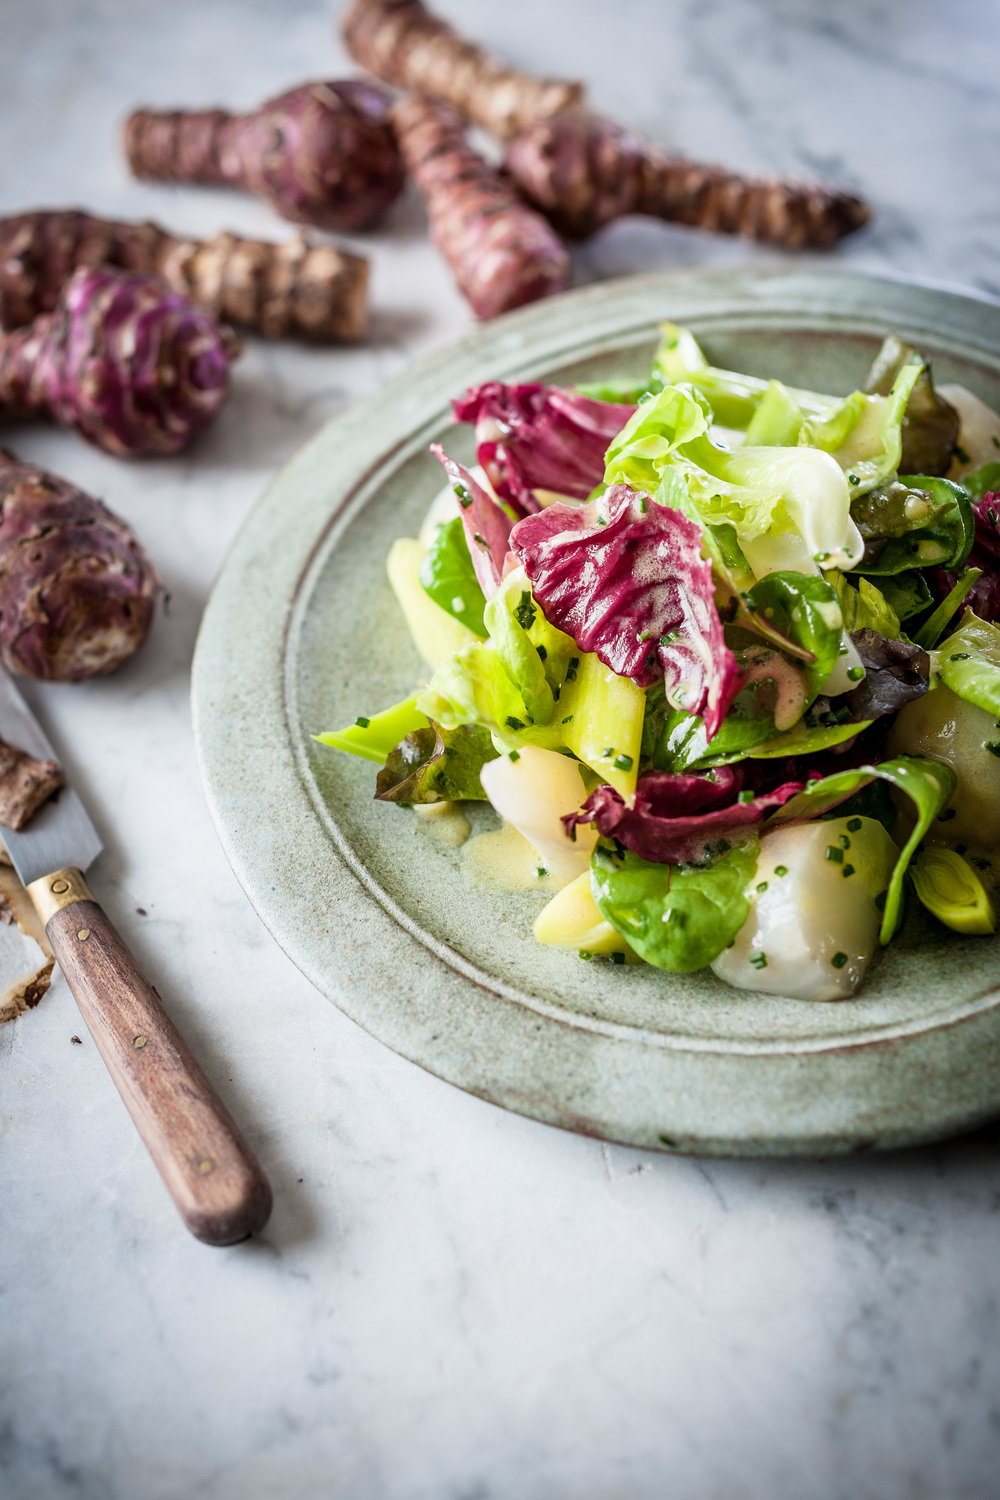 WARM SALAD OF LEEKS, JERUSALEM ARTICHOKES AND WINTER LEAVES  Photograph © David Griffin 2014.